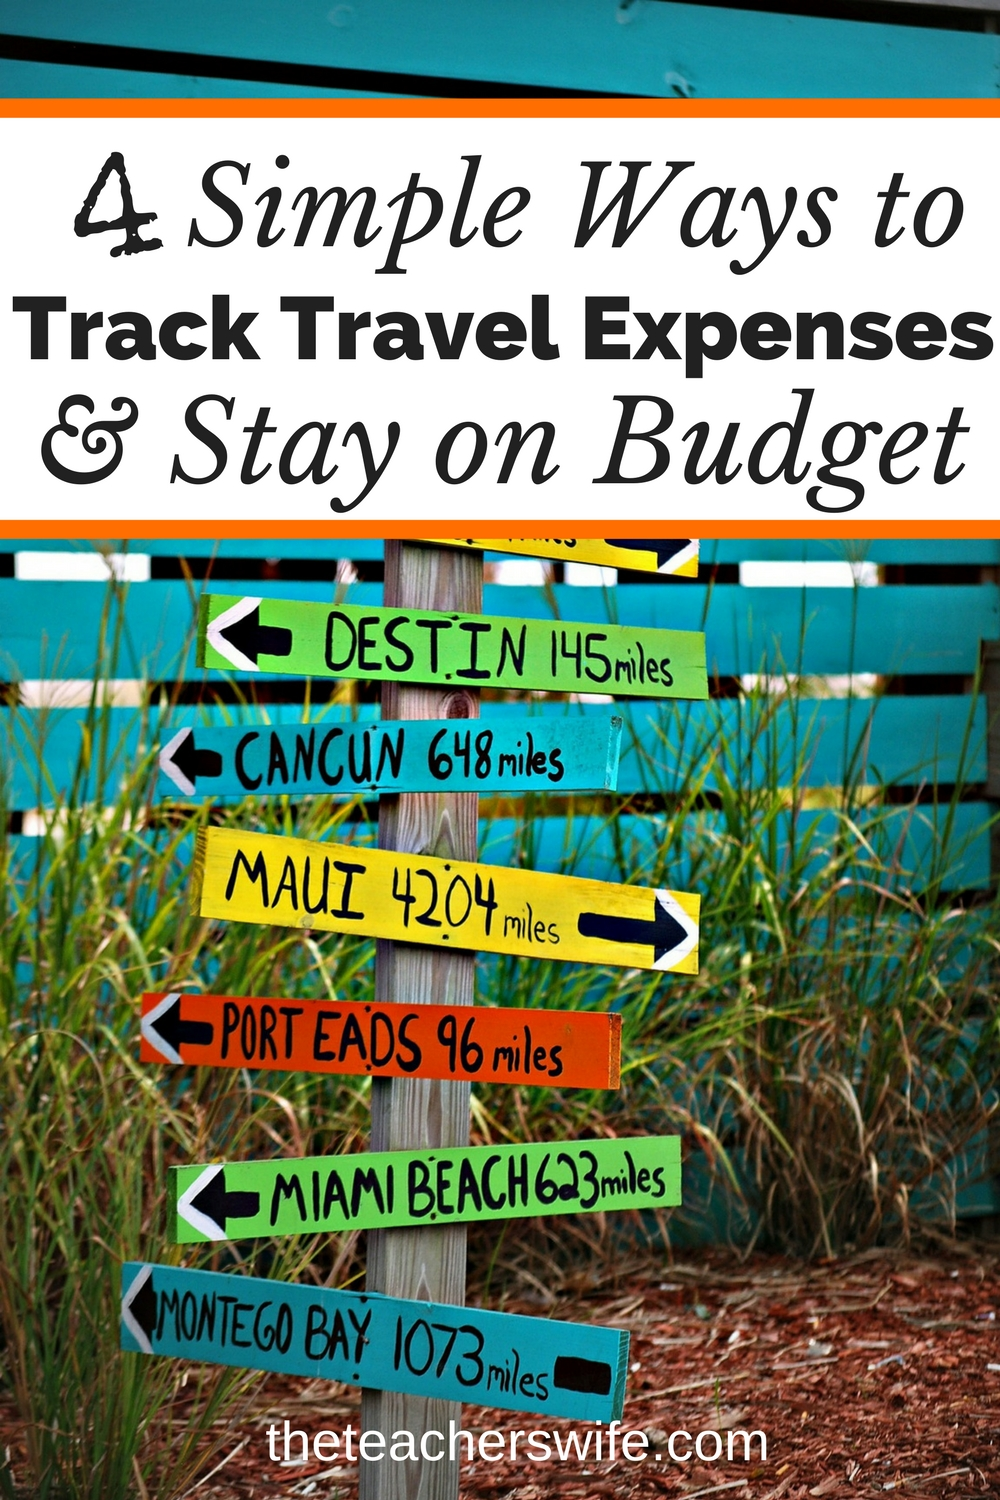 Track travel expenses and enjoy your time away guilt-free! Find out 4 methods that are simple and easy!